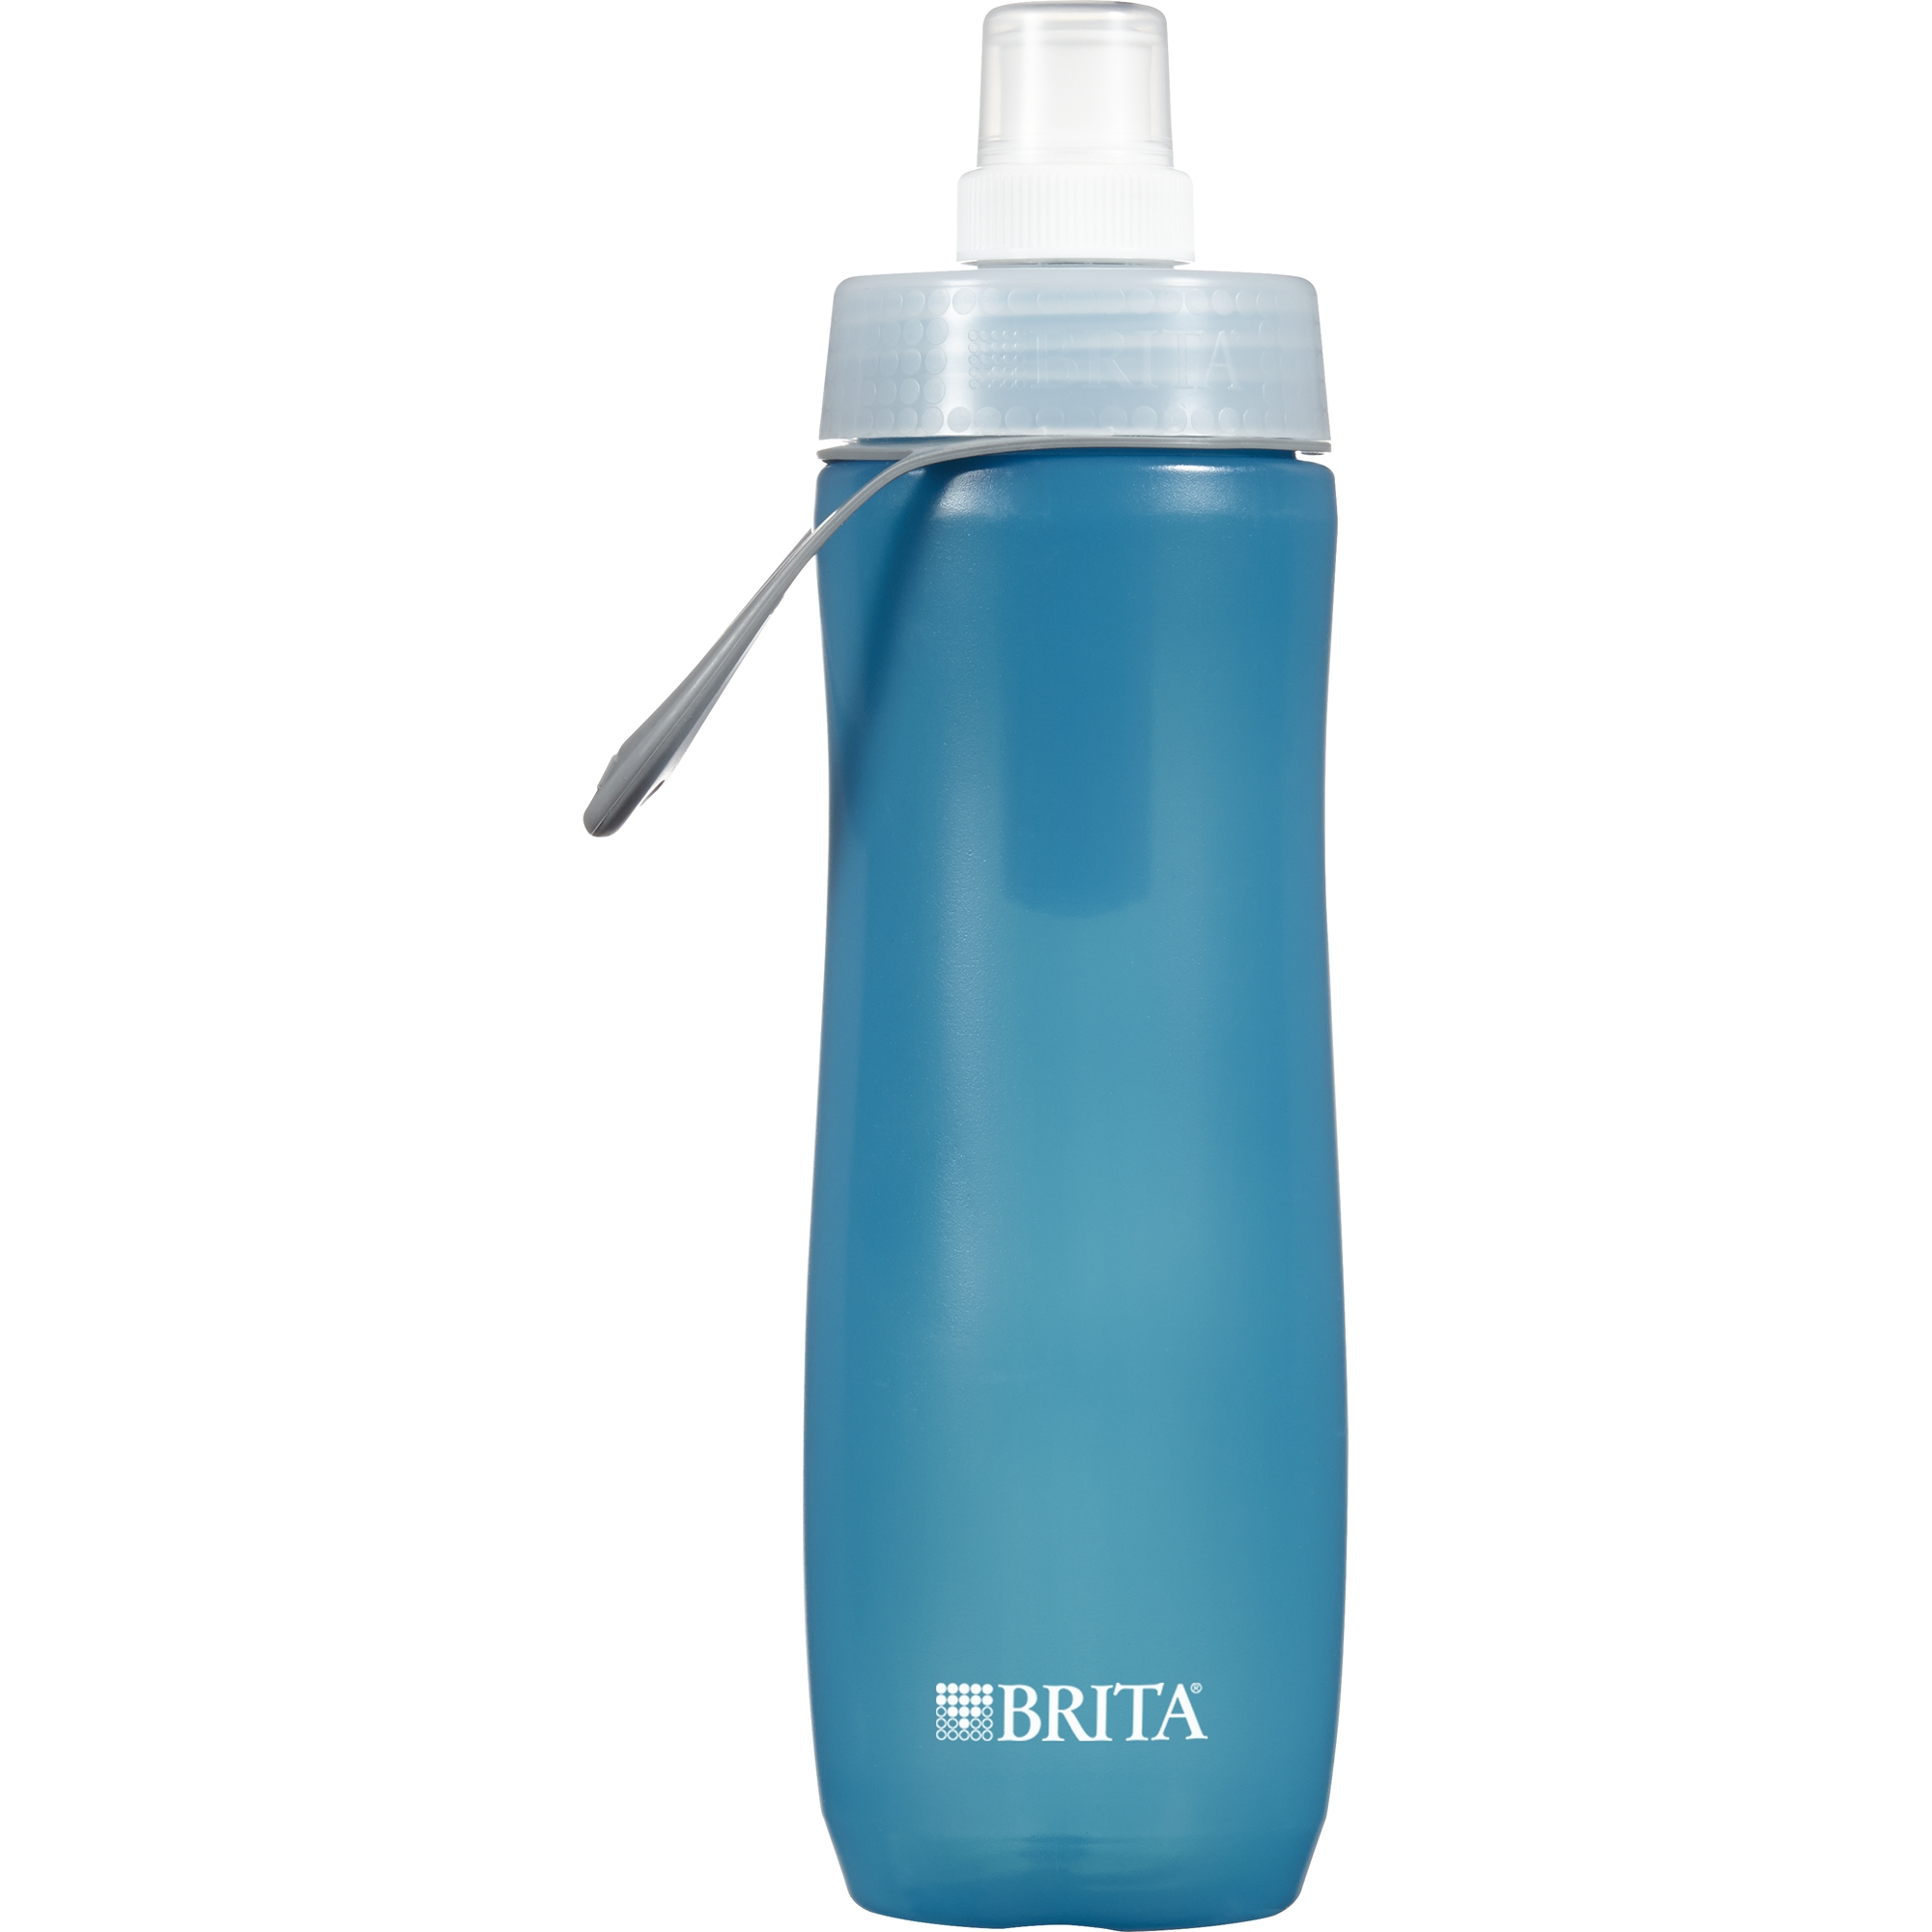 Brita 20 oz Sport Water Bottle with Filter BPA Free Blue by The Clorox Company